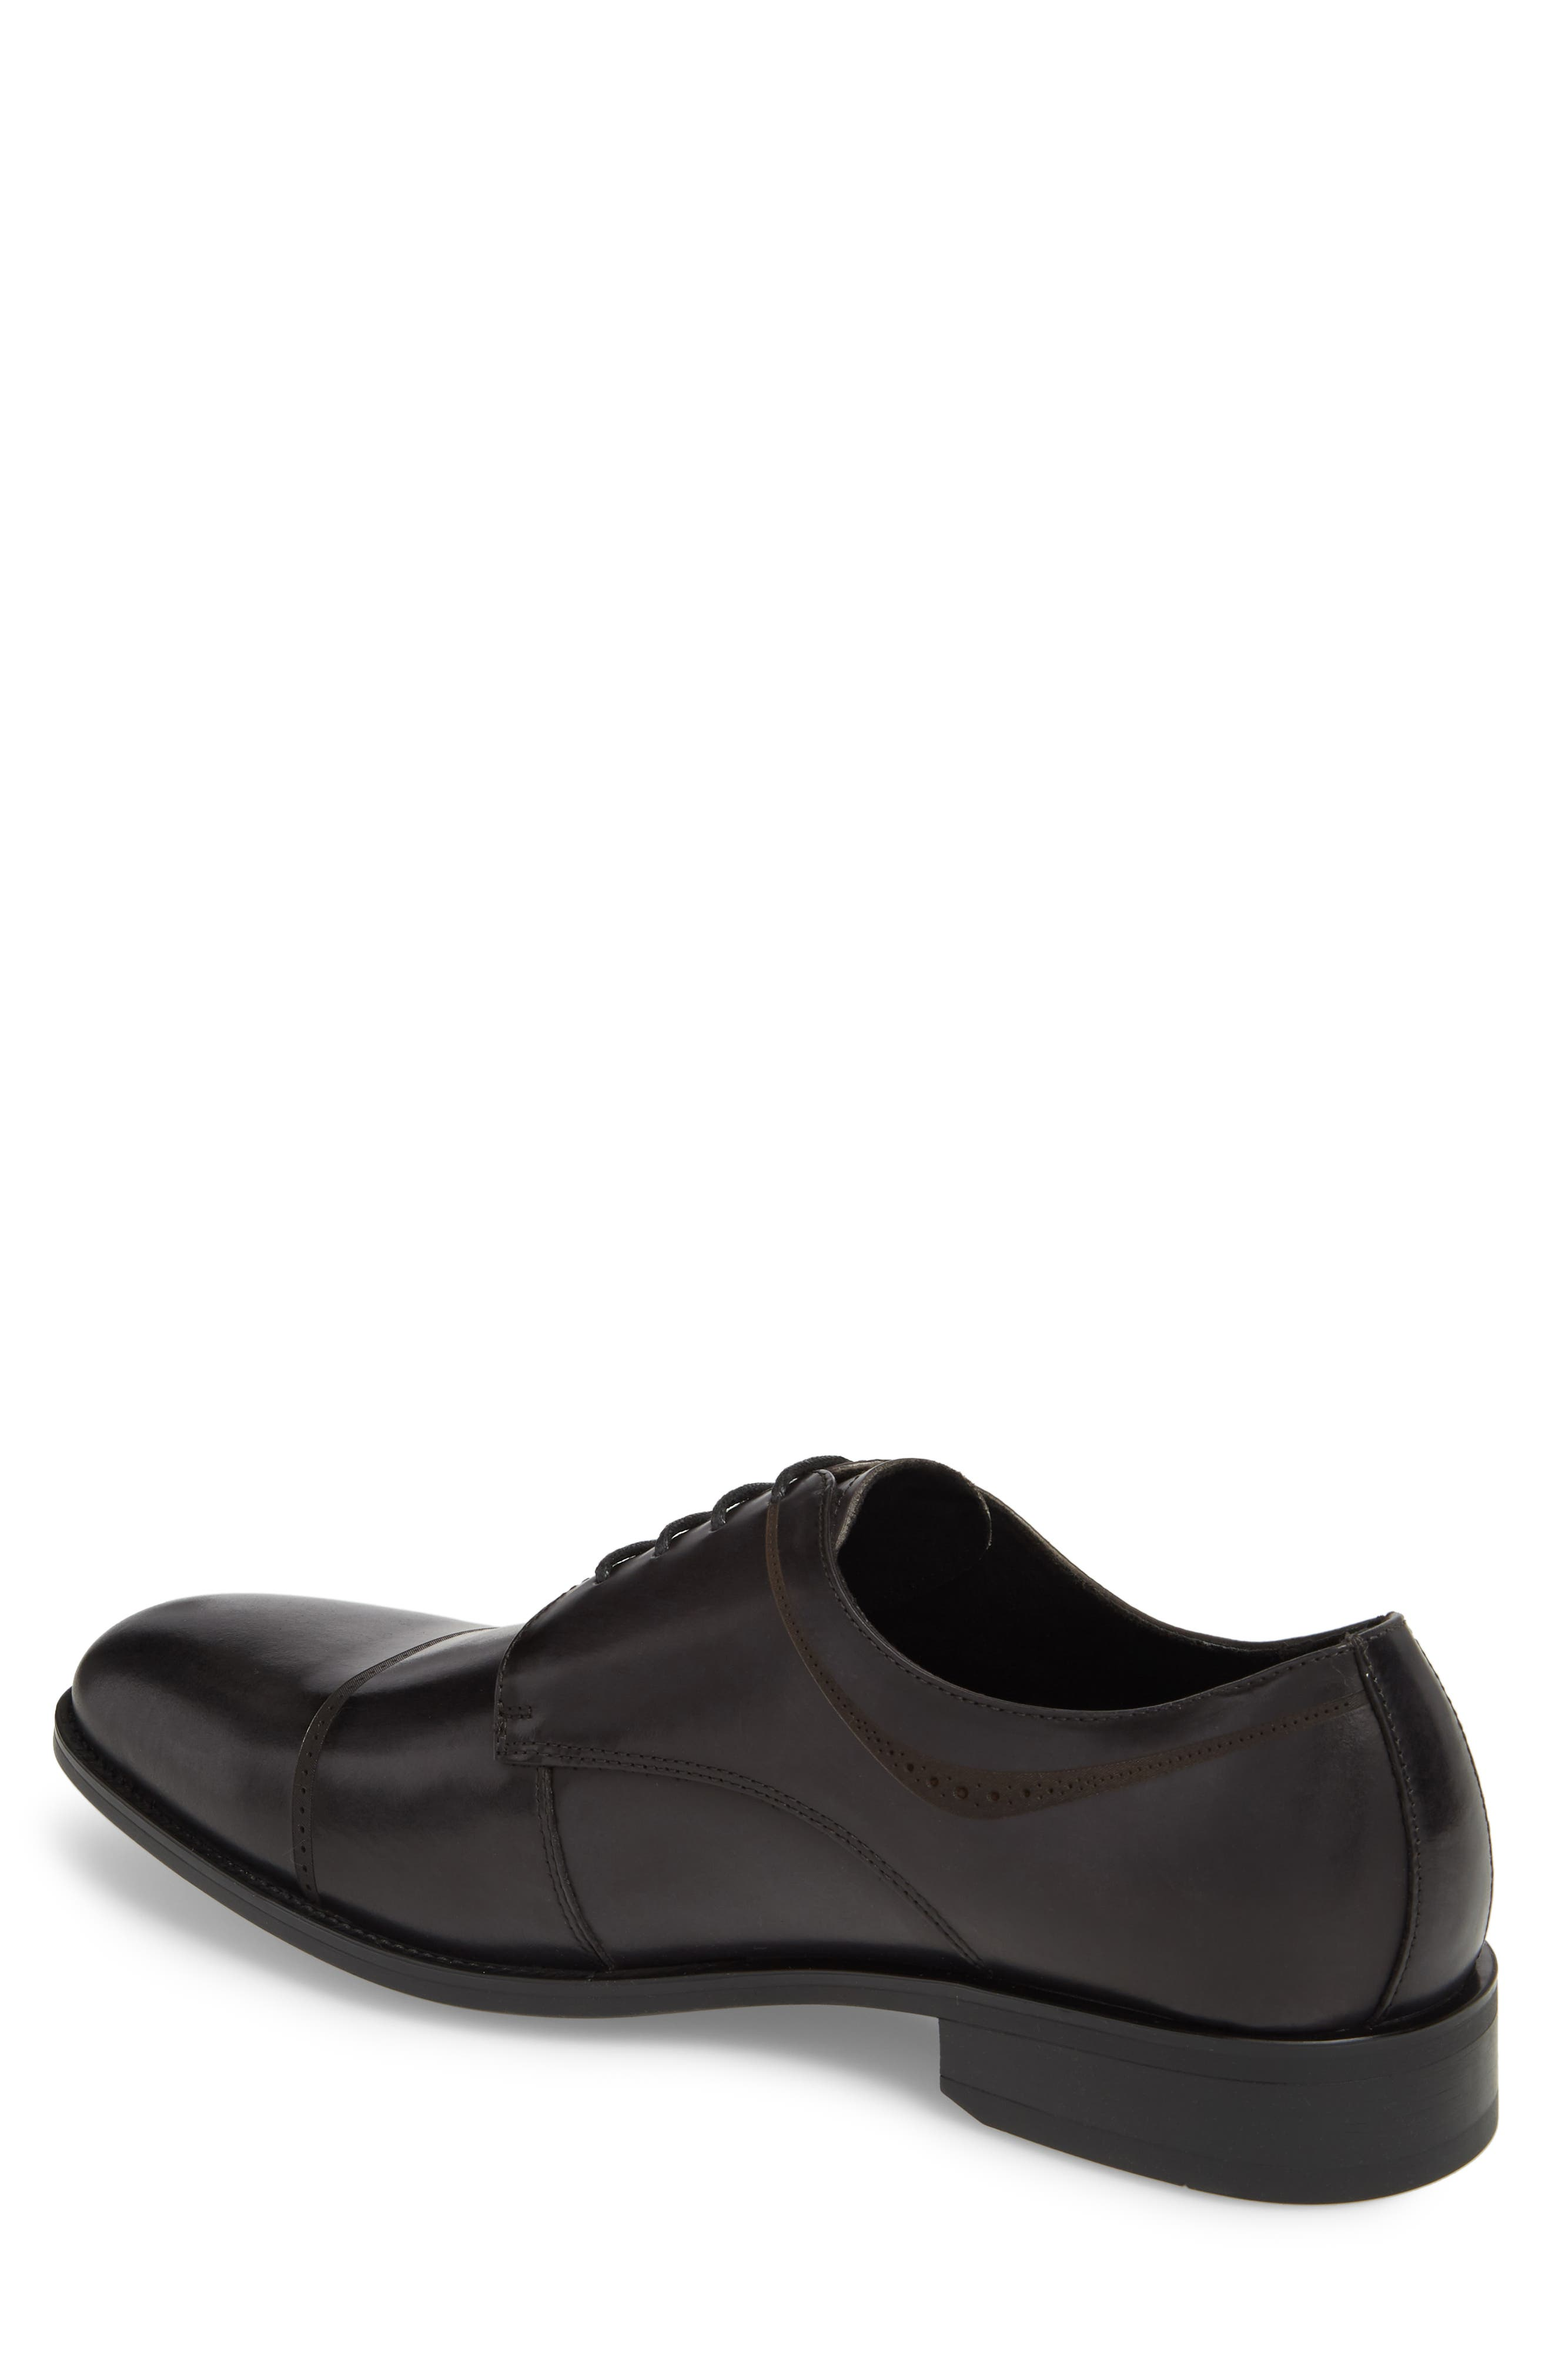 Leisure Time Cap Toe Derby,                             Alternate thumbnail 2, color,                             DARK GREY LEATHER